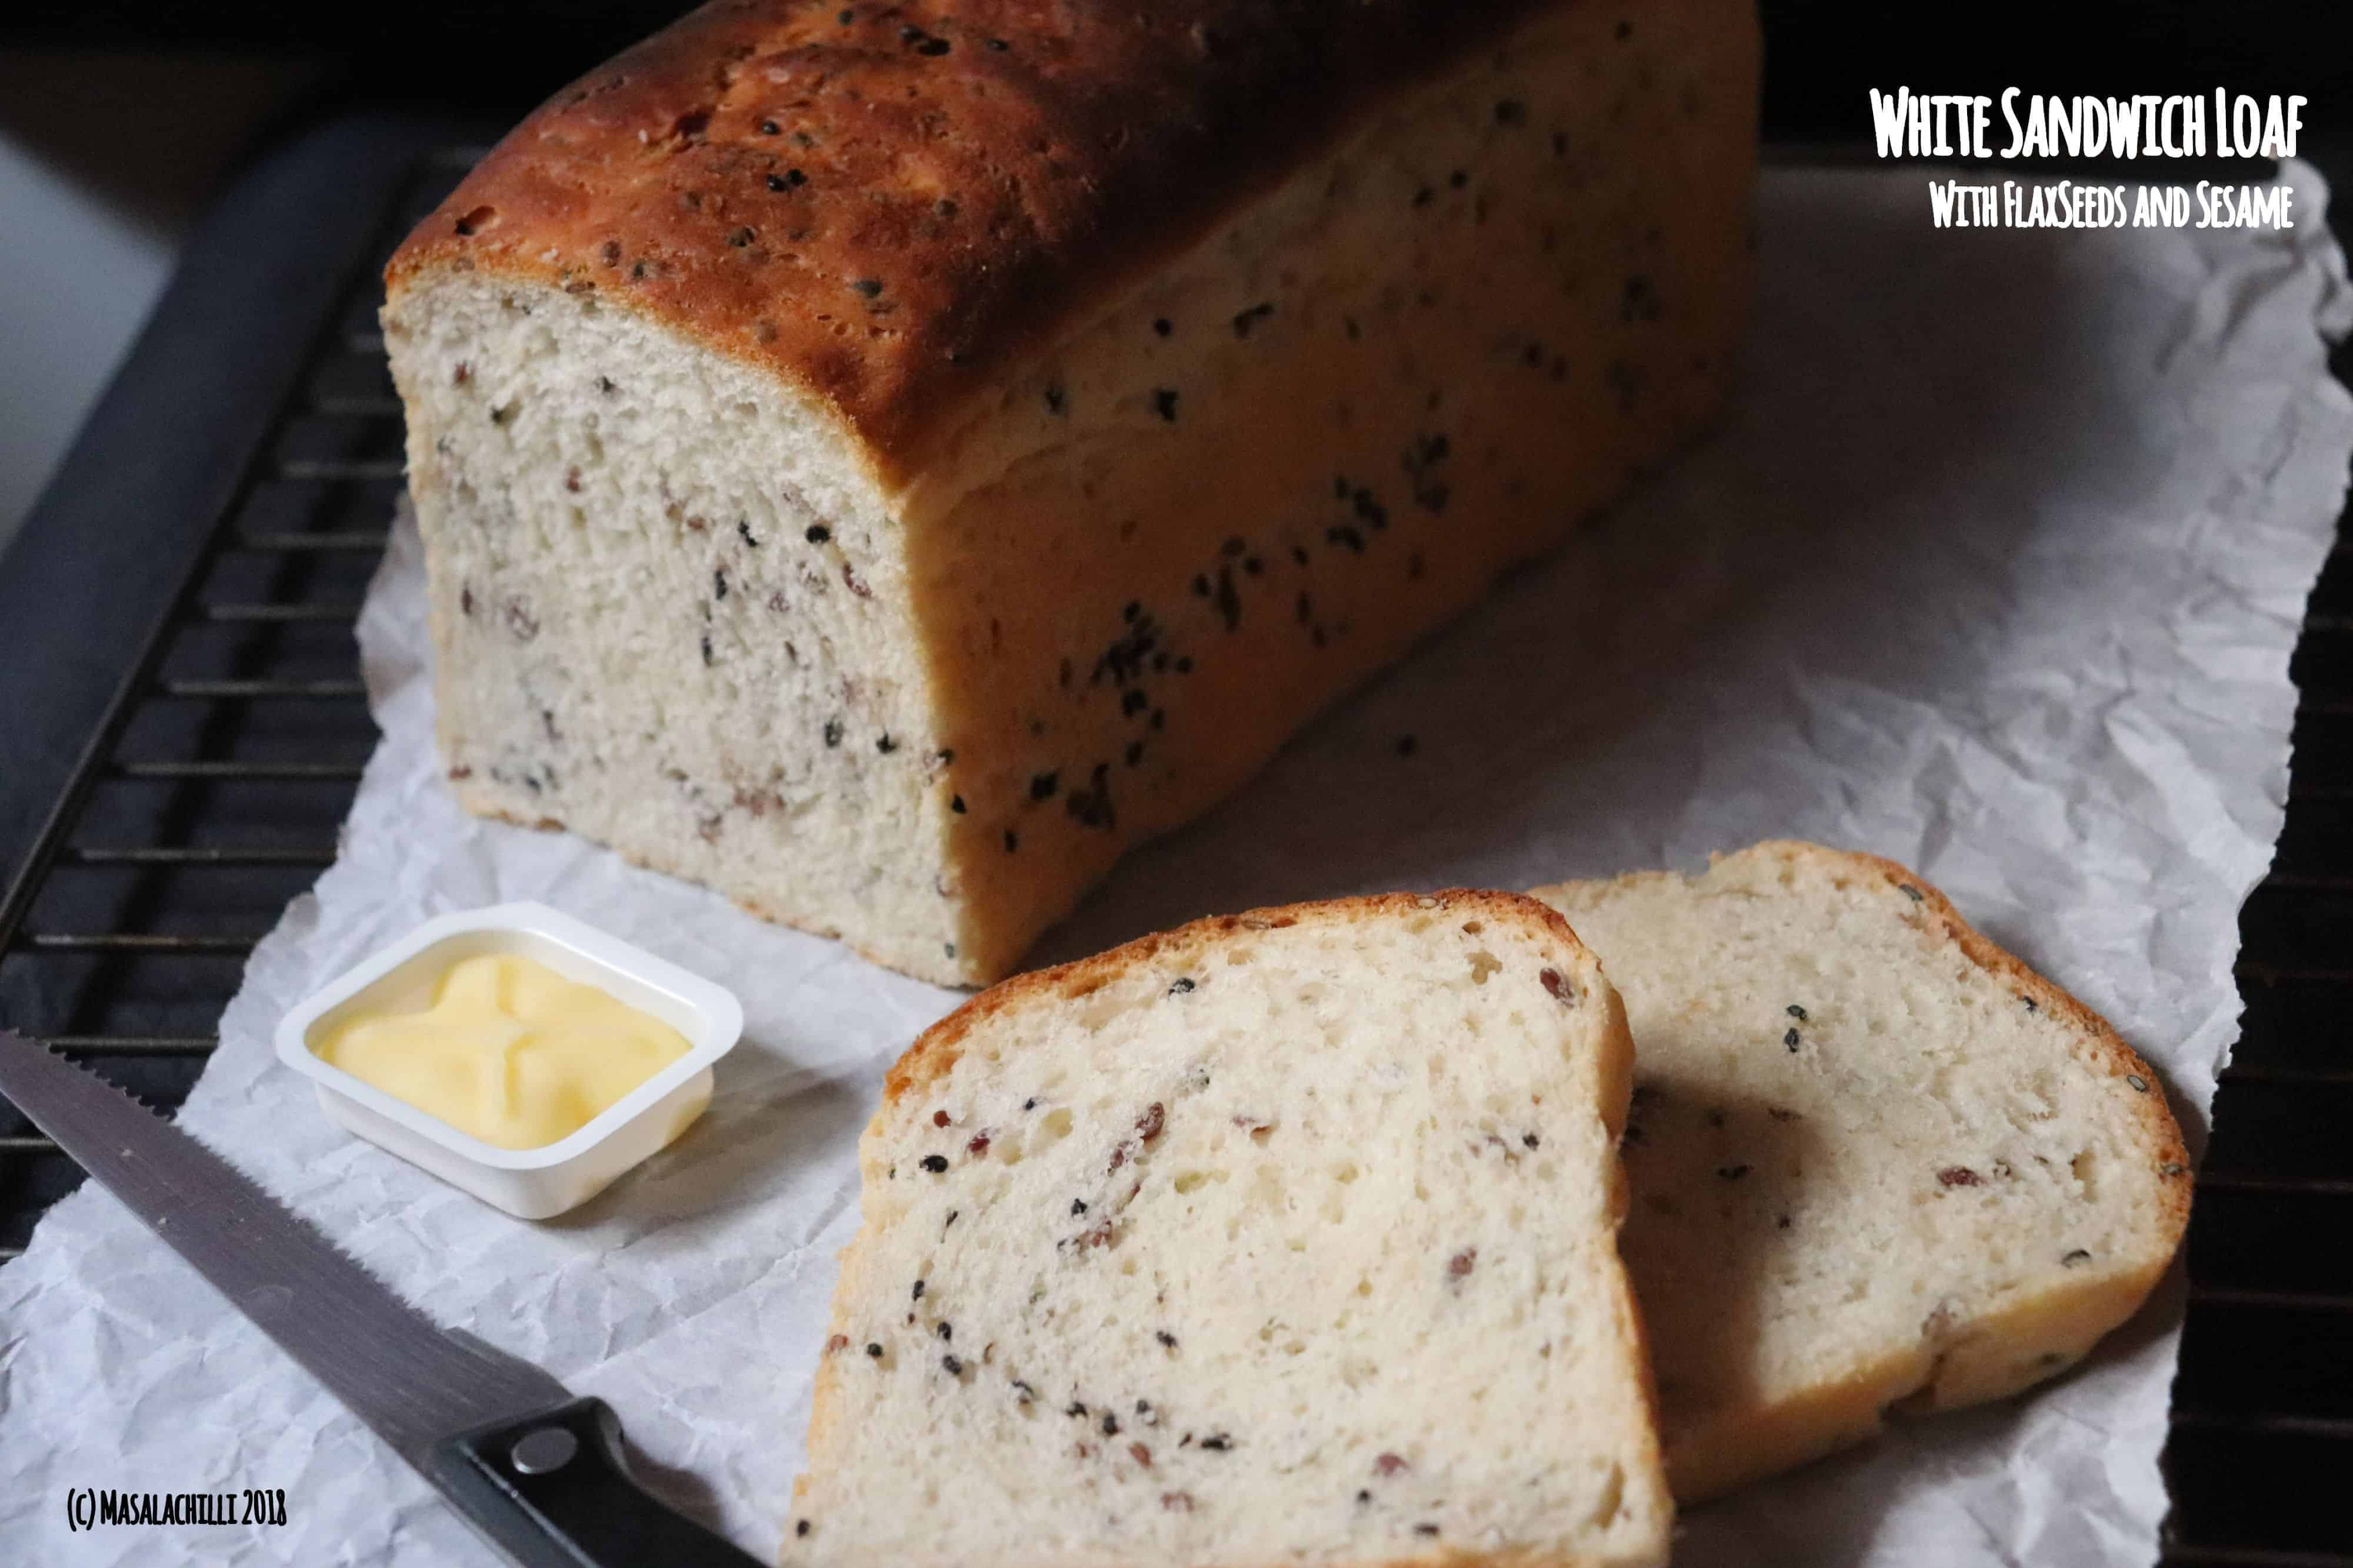 White Sandwich Bread with Flax and Sesame seeds